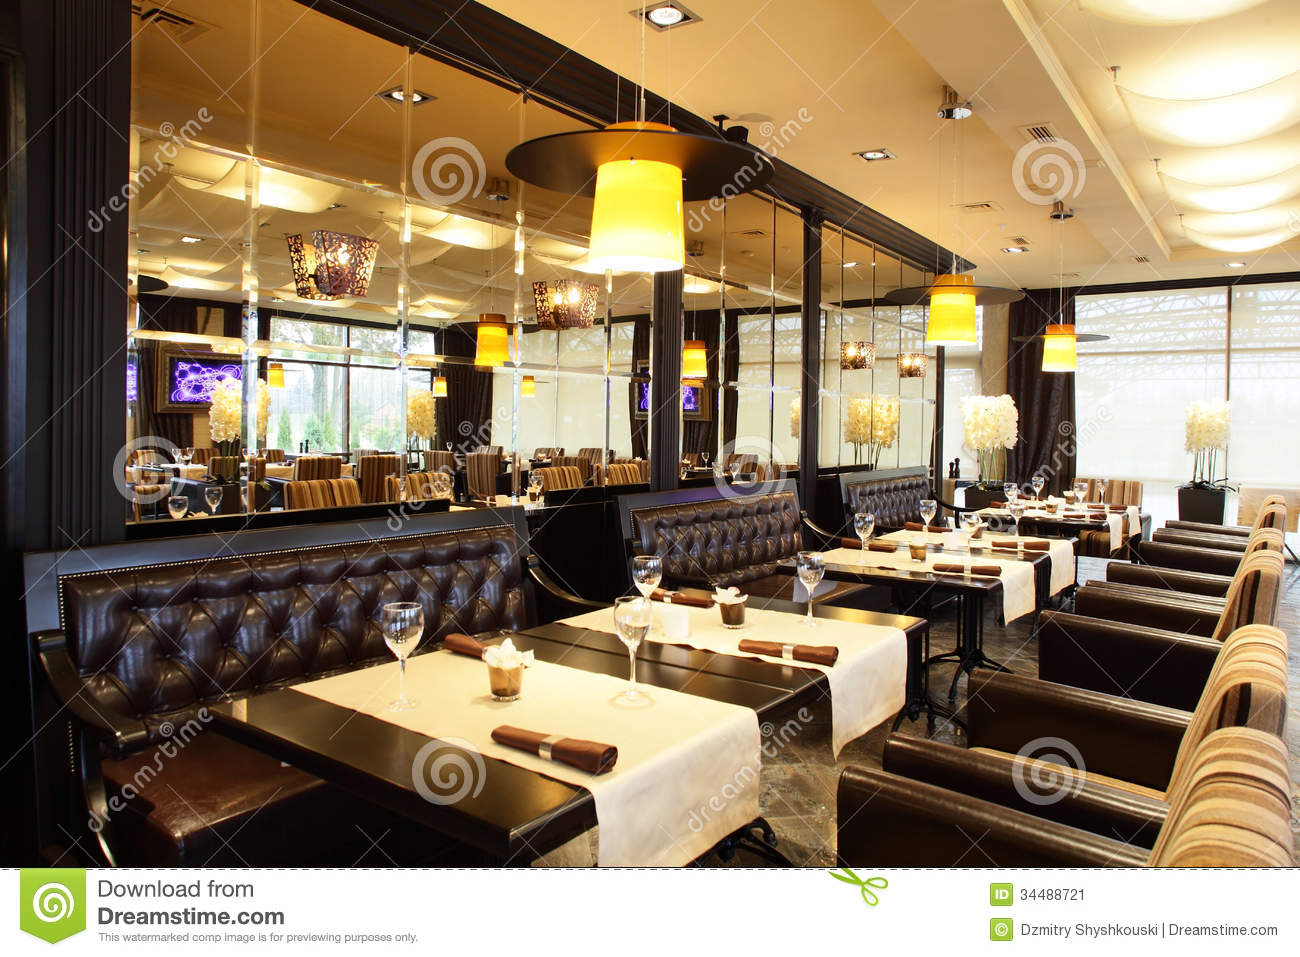 luxury restaurant in european style stock image image of downtown luxury 34488721. Black Bedroom Furniture Sets. Home Design Ideas